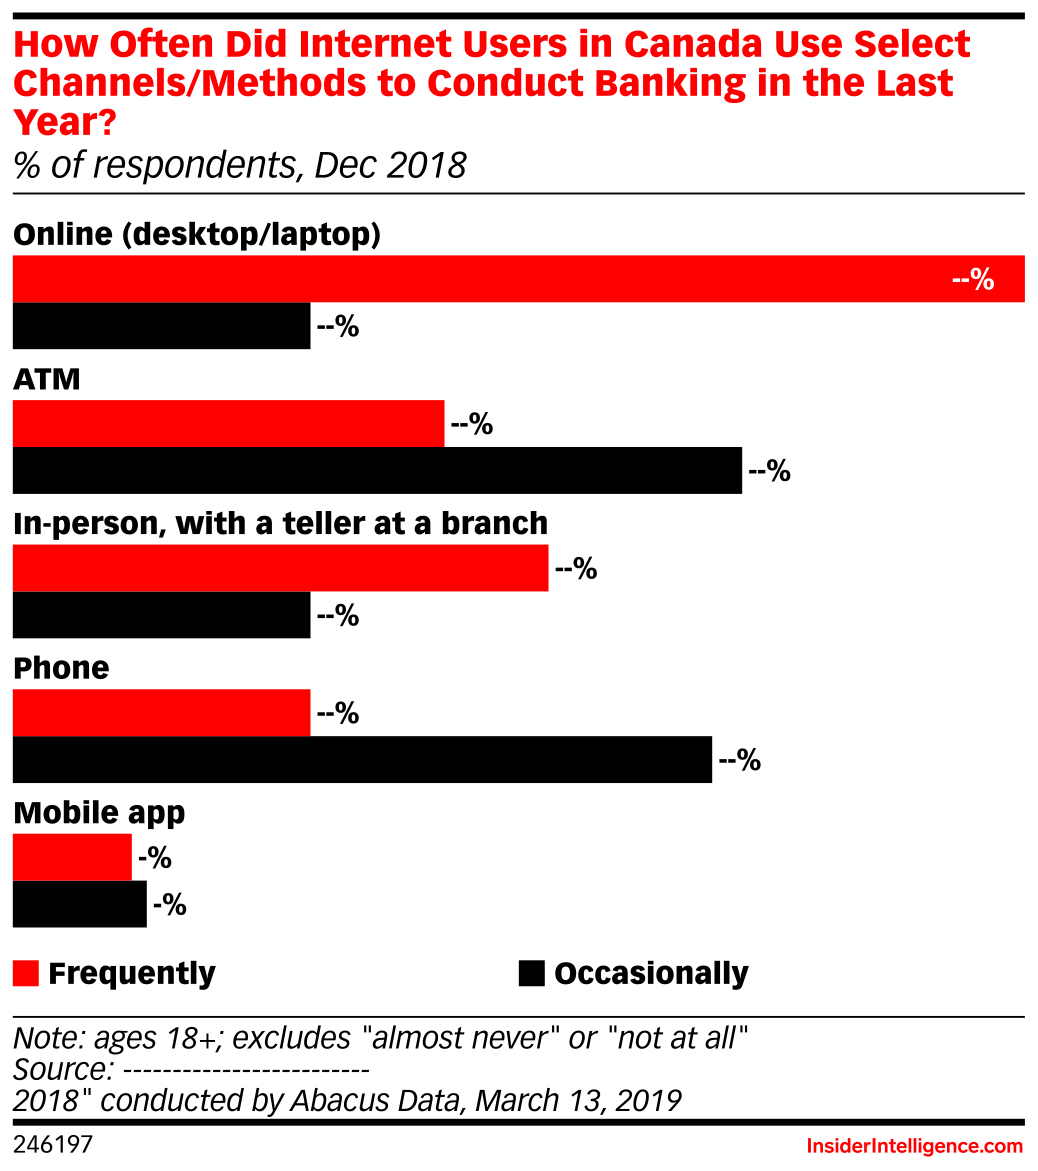 How Often Did Internet Users in Canada Use Select Channels/Methods to Conduct Banking in the Last Year? (% of respondents, Dec 2018)